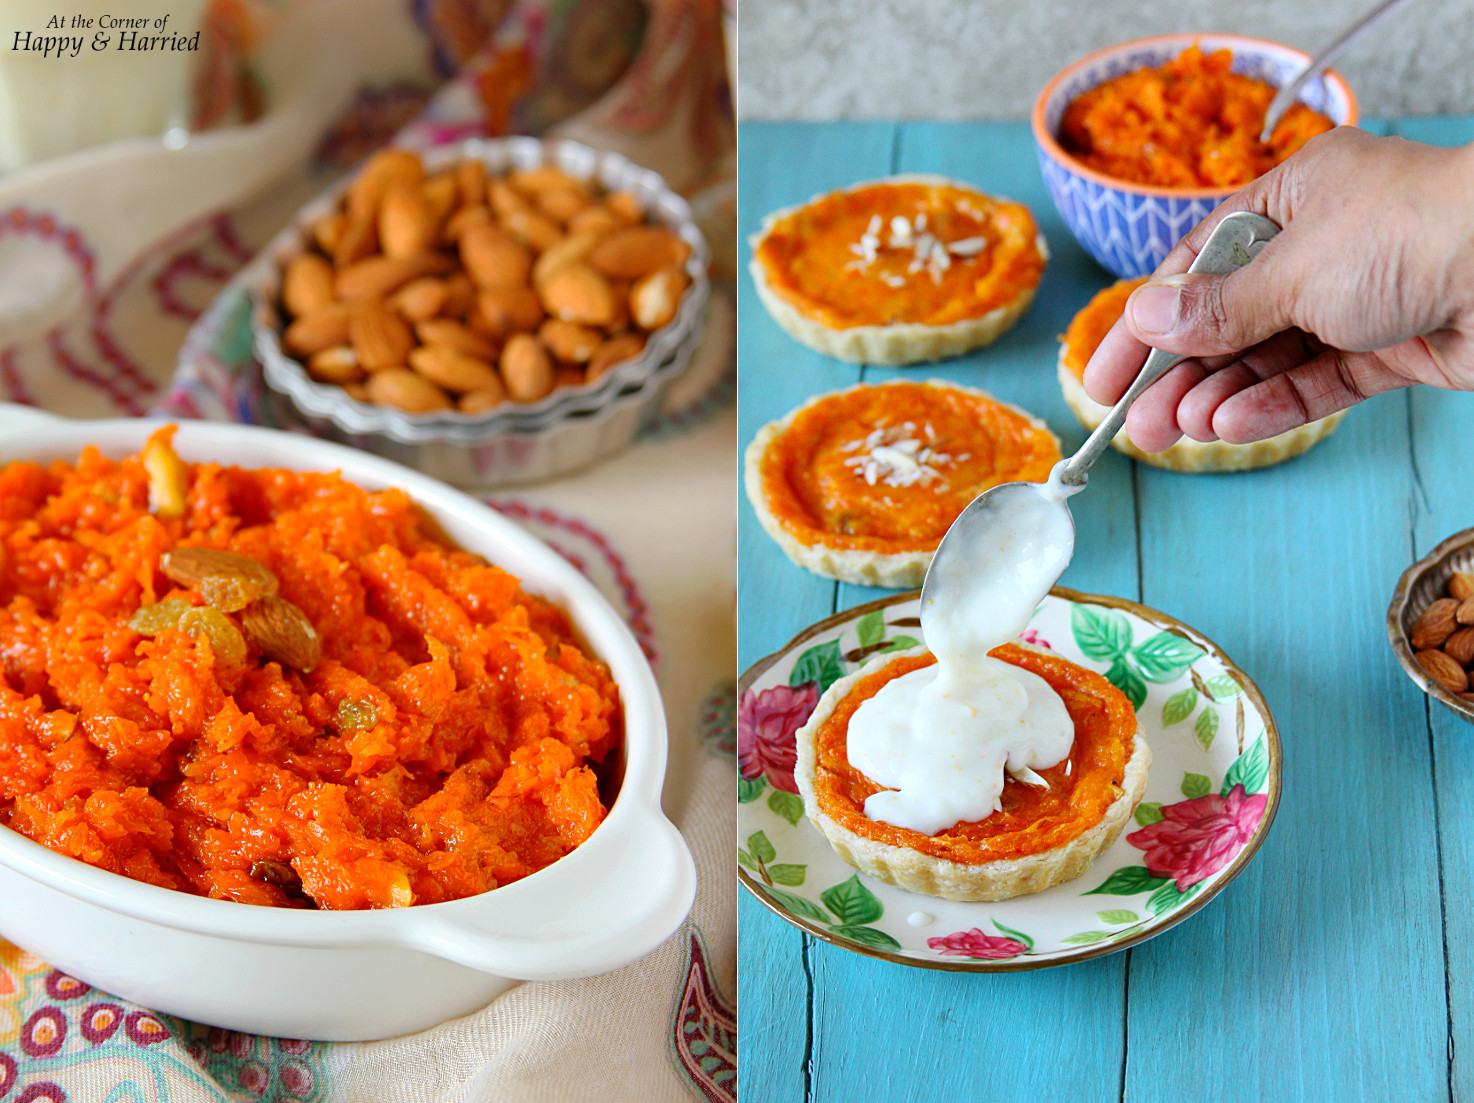 Carrot Halwa Mini Tarts With Orange-Vanilla Custard